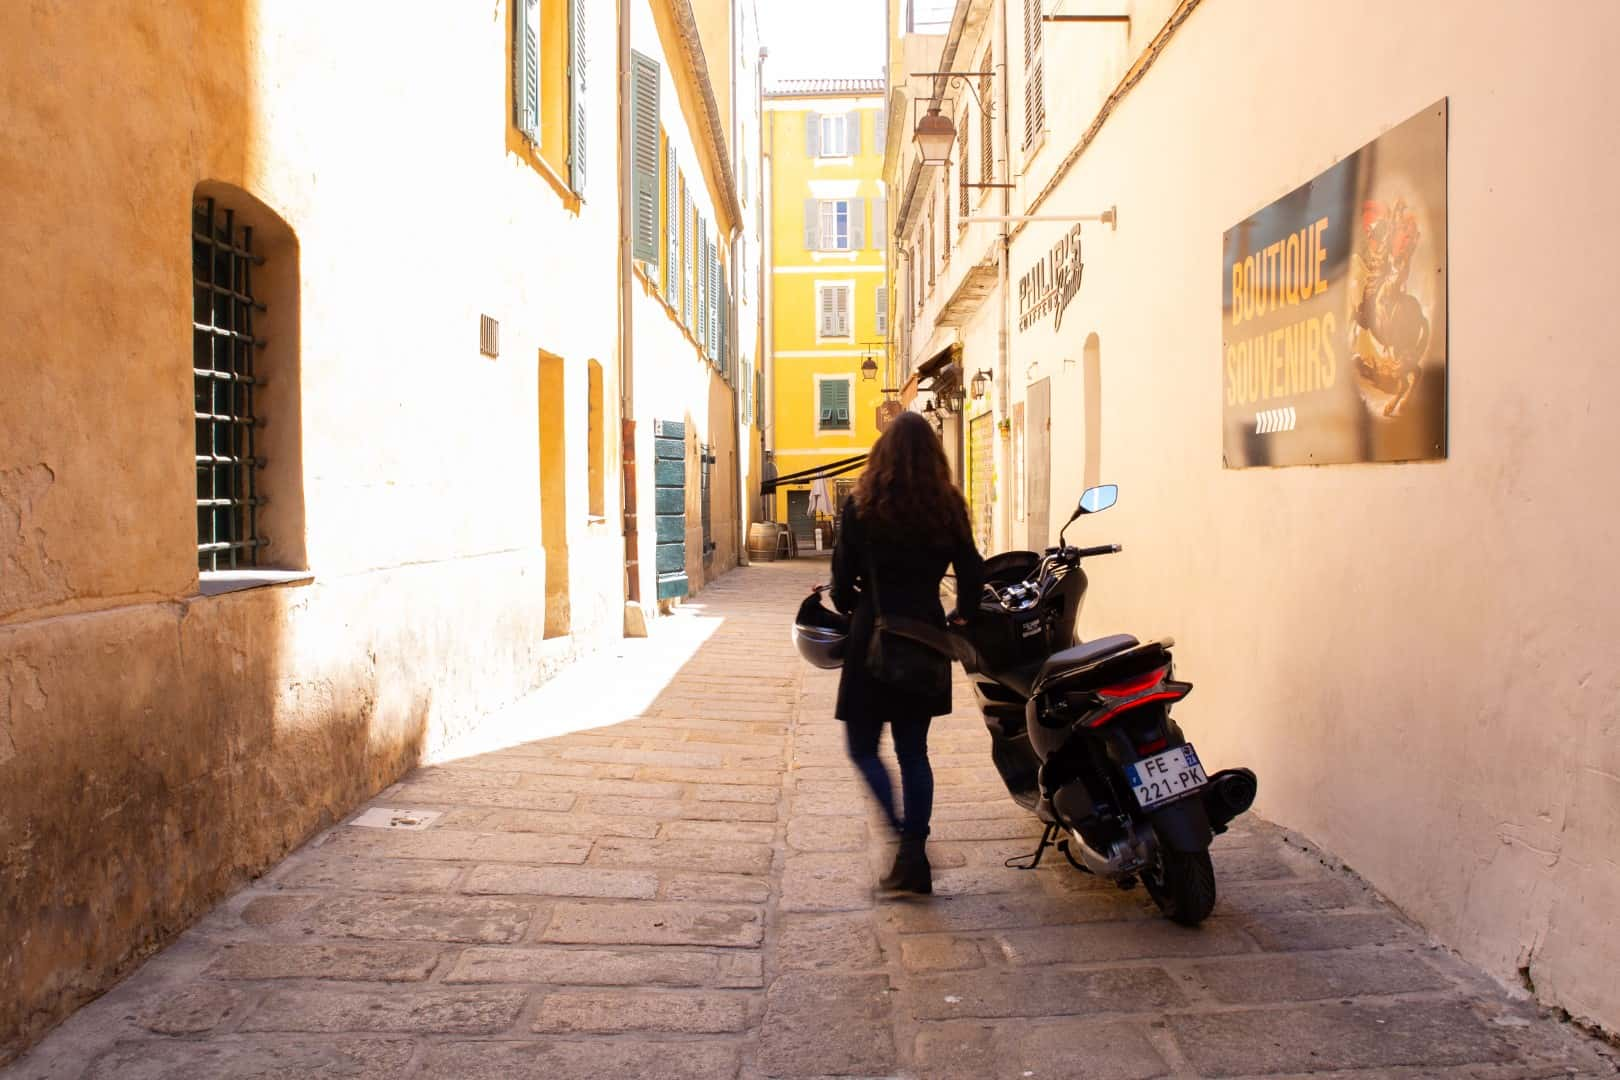 Location de scooter a Ajaccio